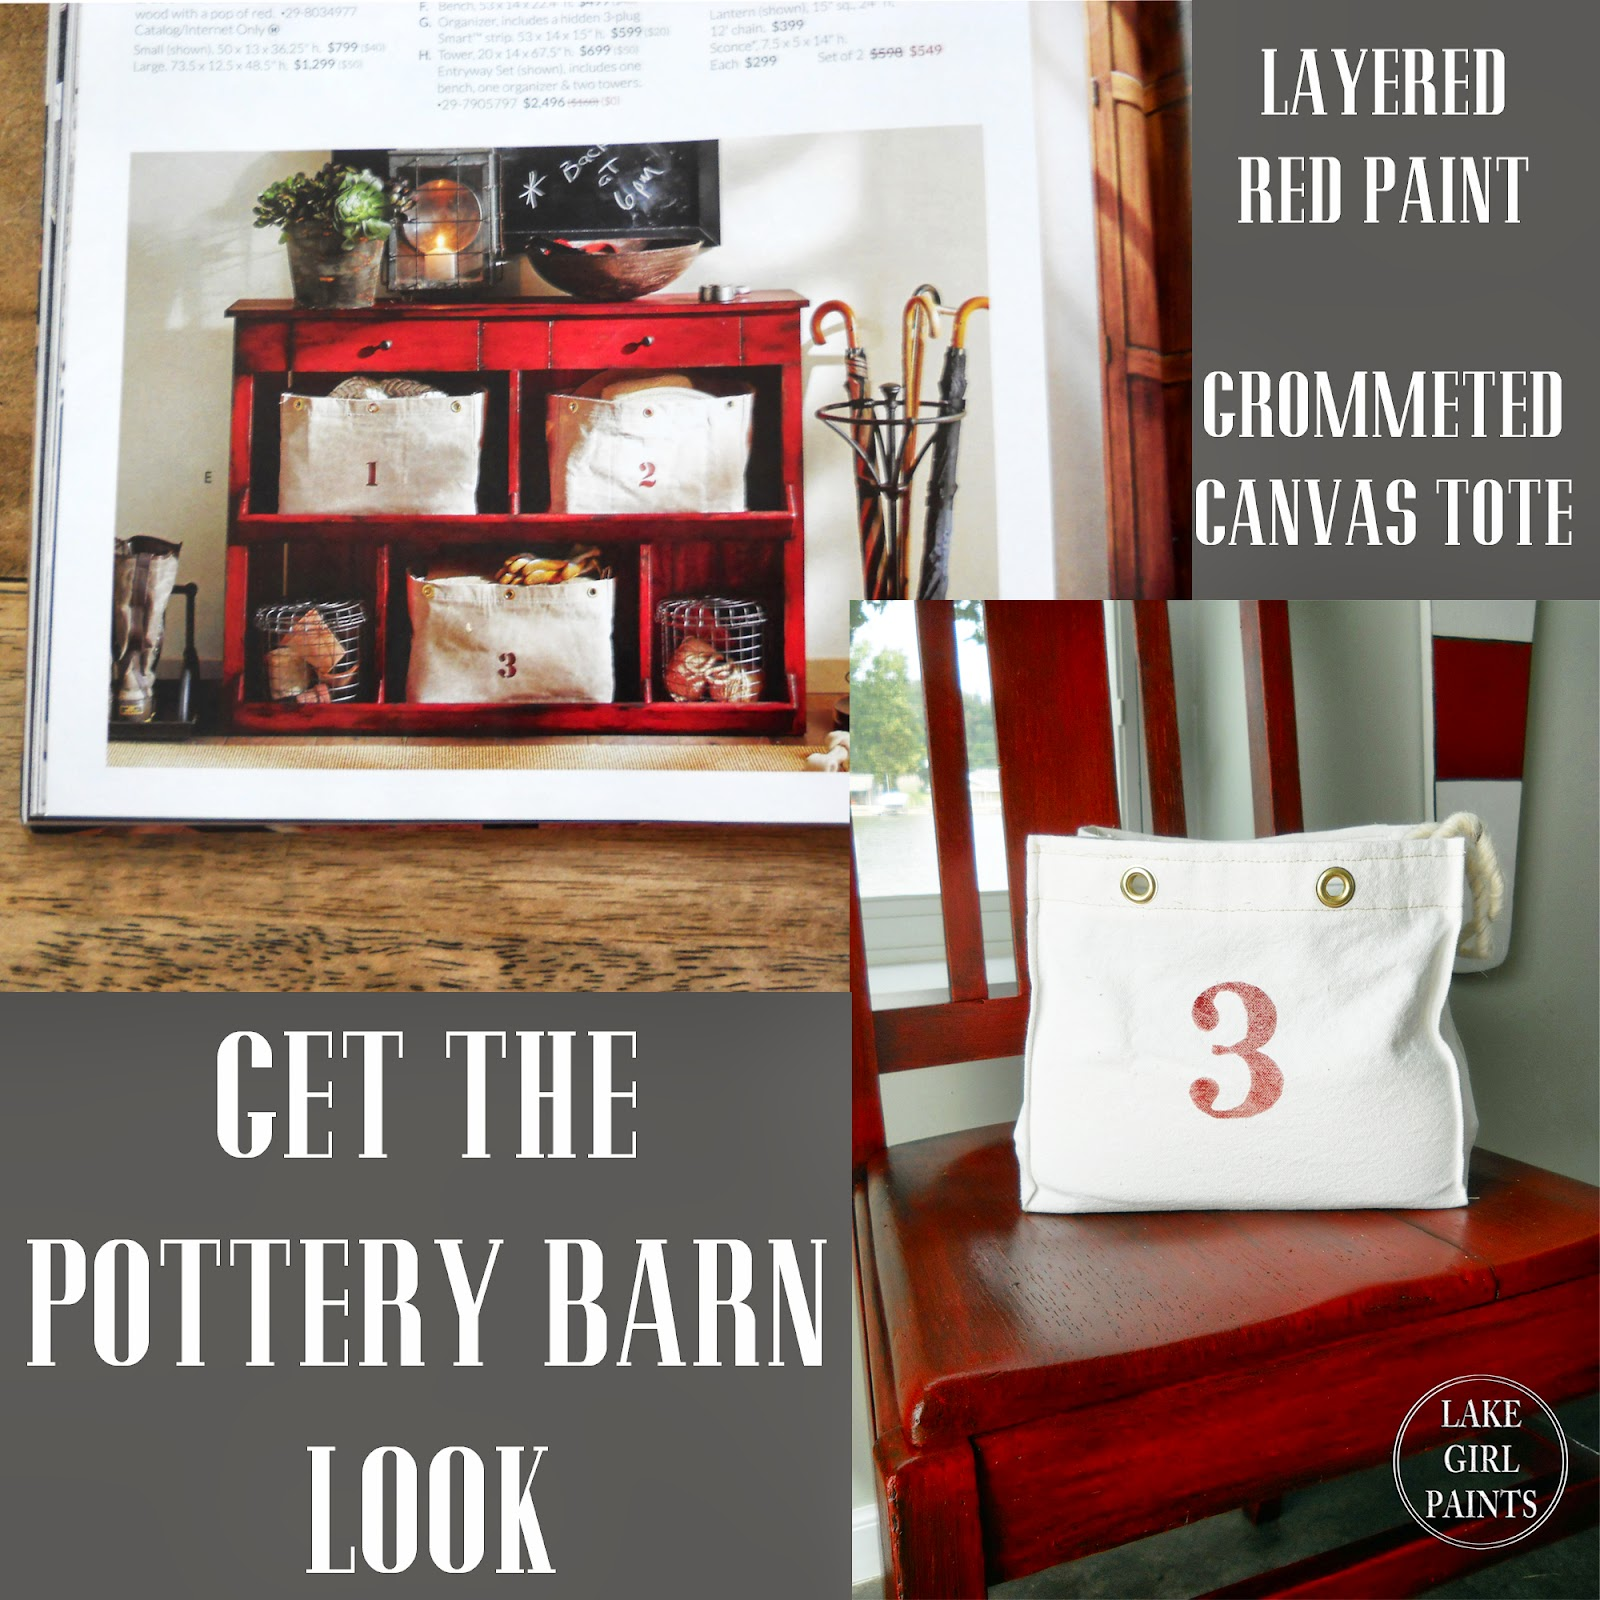 My Pottery Barn Look on a Budget. Lake Girl Paints  My Pottery Barn Look on a Budget